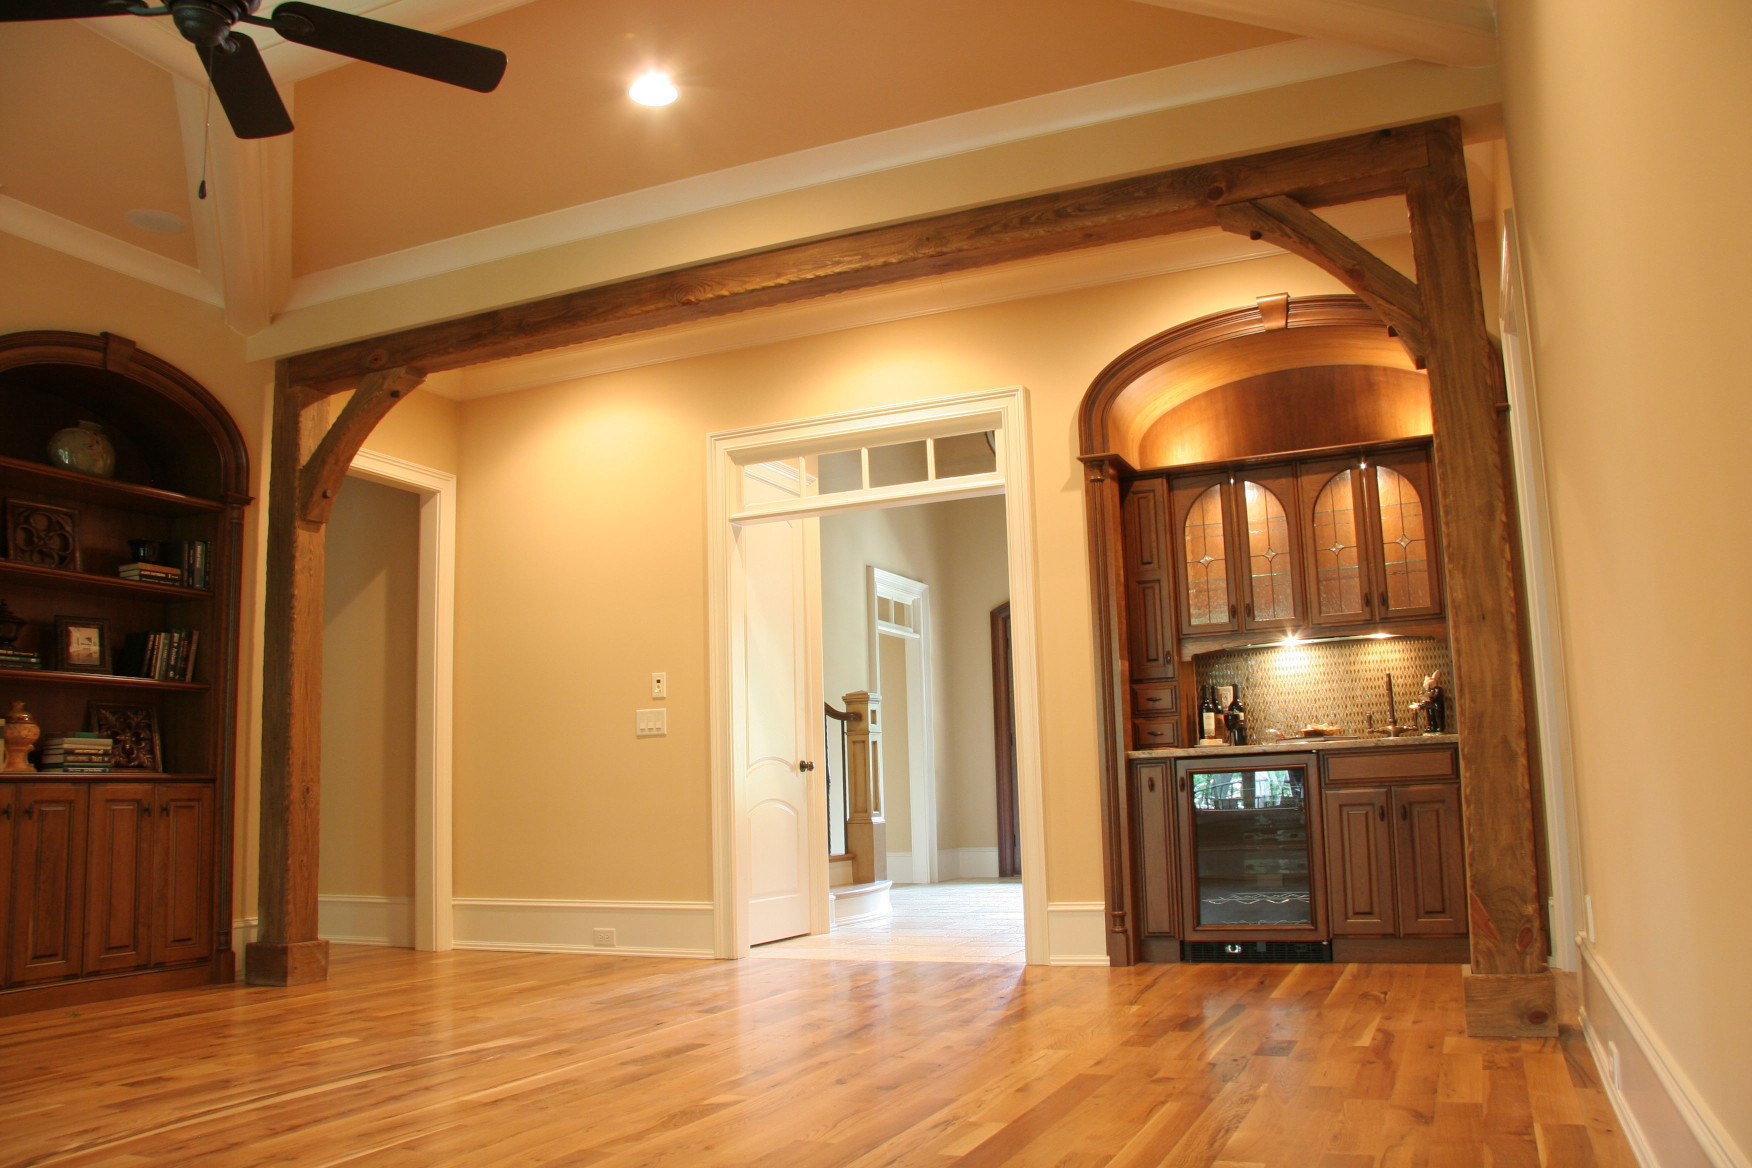 These Wood Beams Posts And Braces Are A Great E Definer In